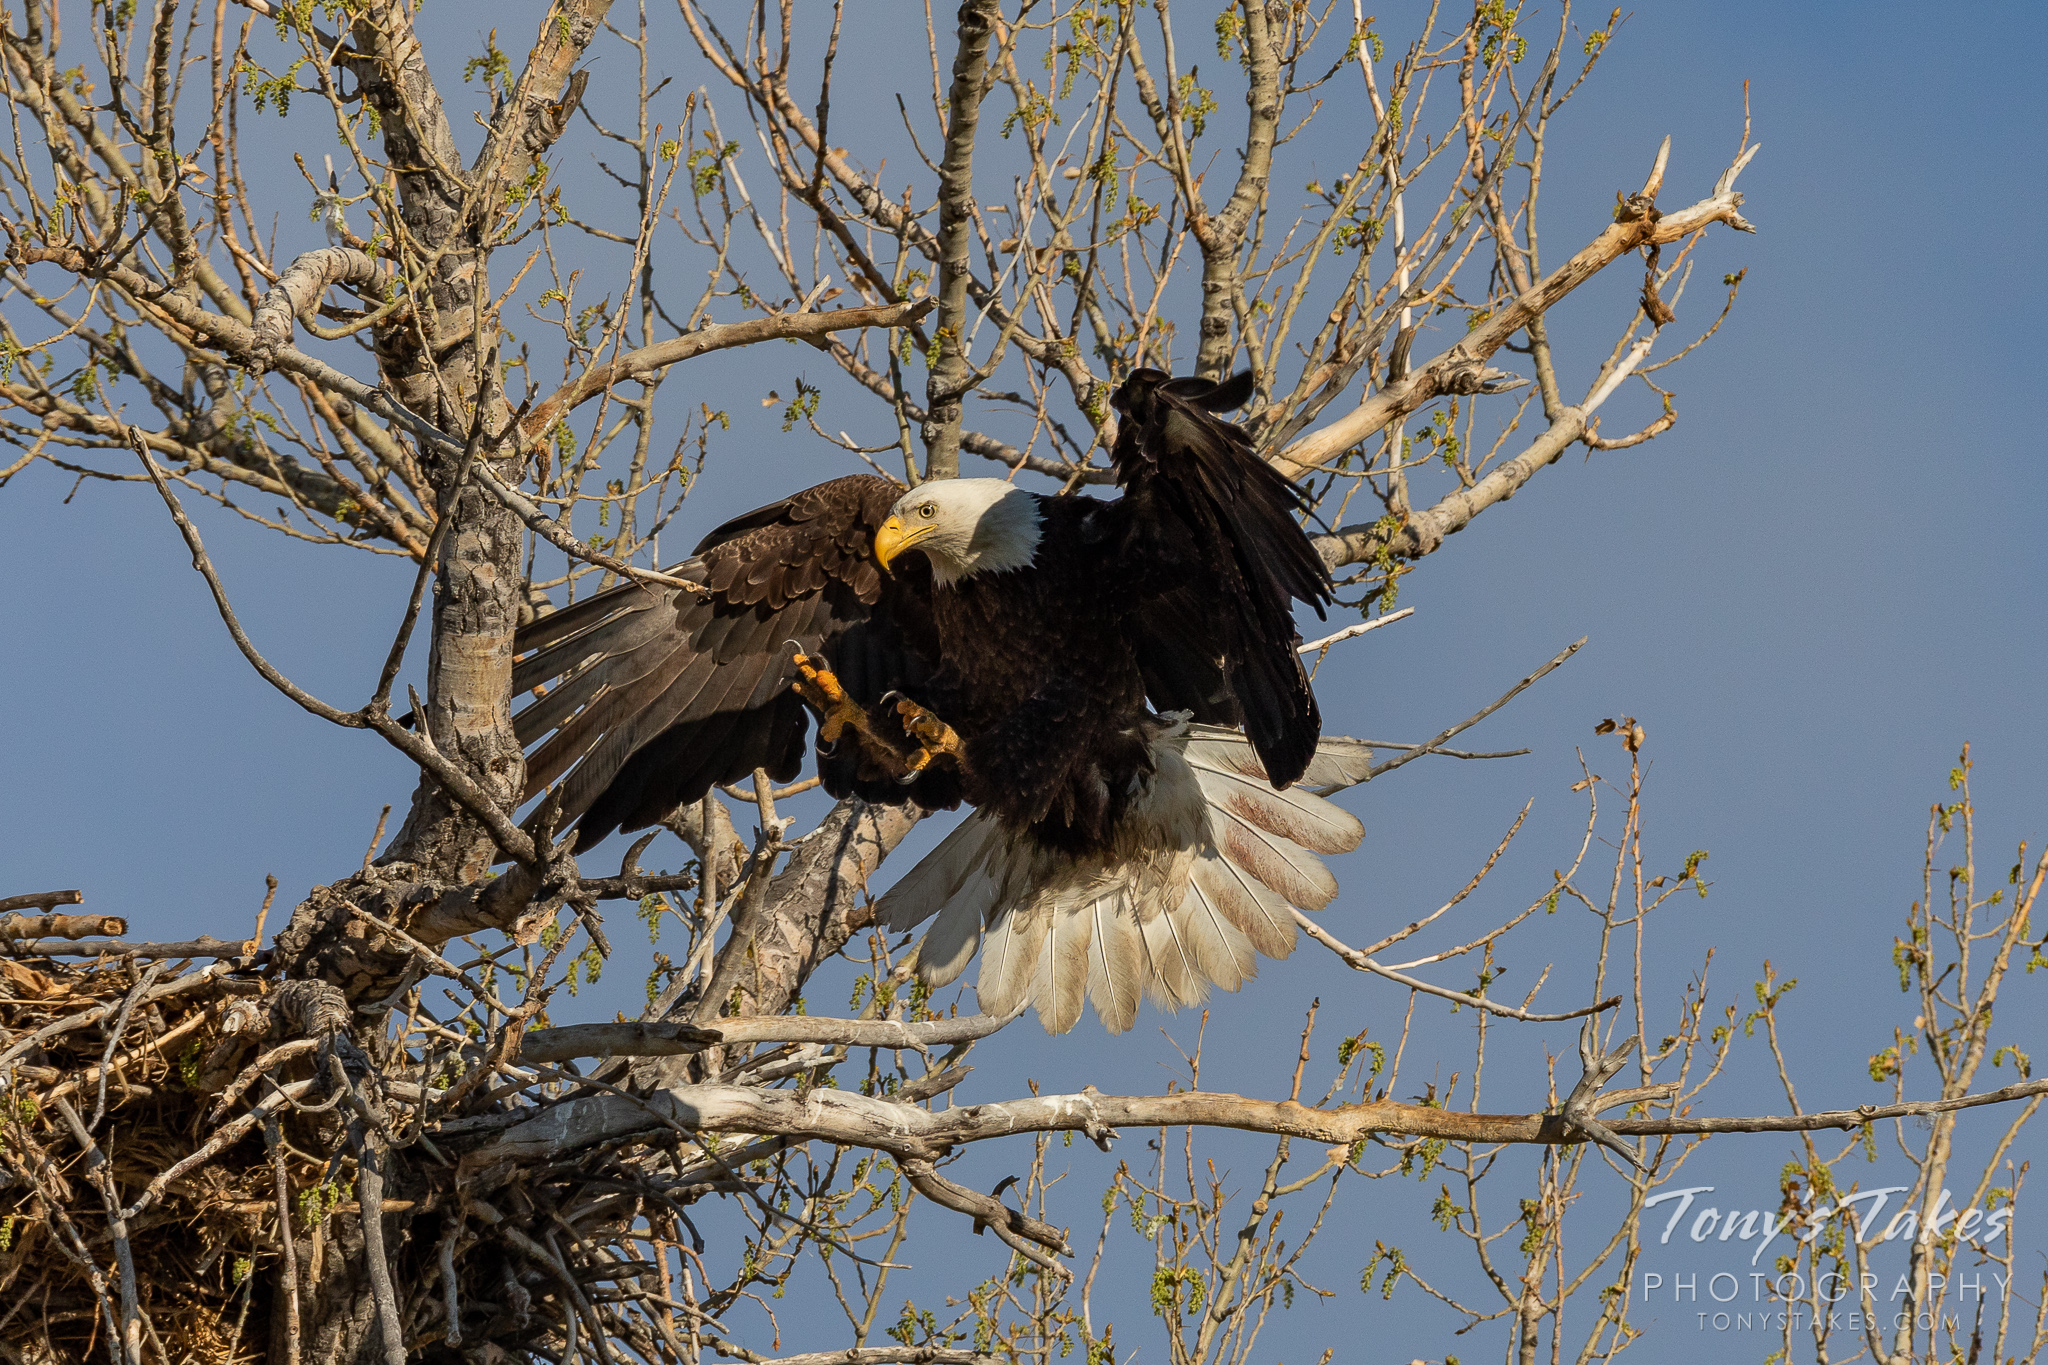 A bald eagle extends its legs and opens its talons as it prepares to land in Adams County, Colorado. (© Tony's Takes)